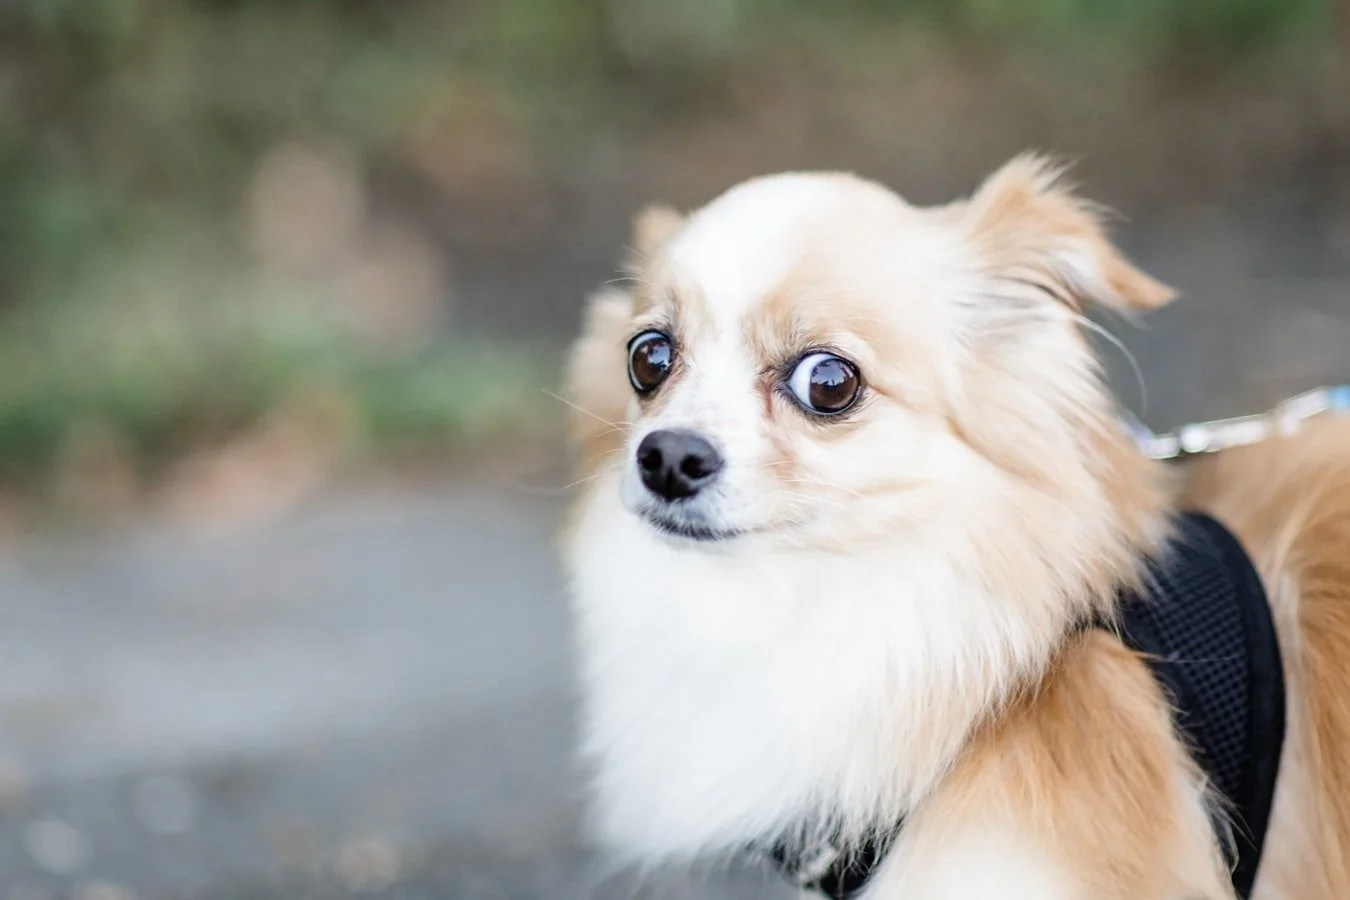 skeptical look on dogs face